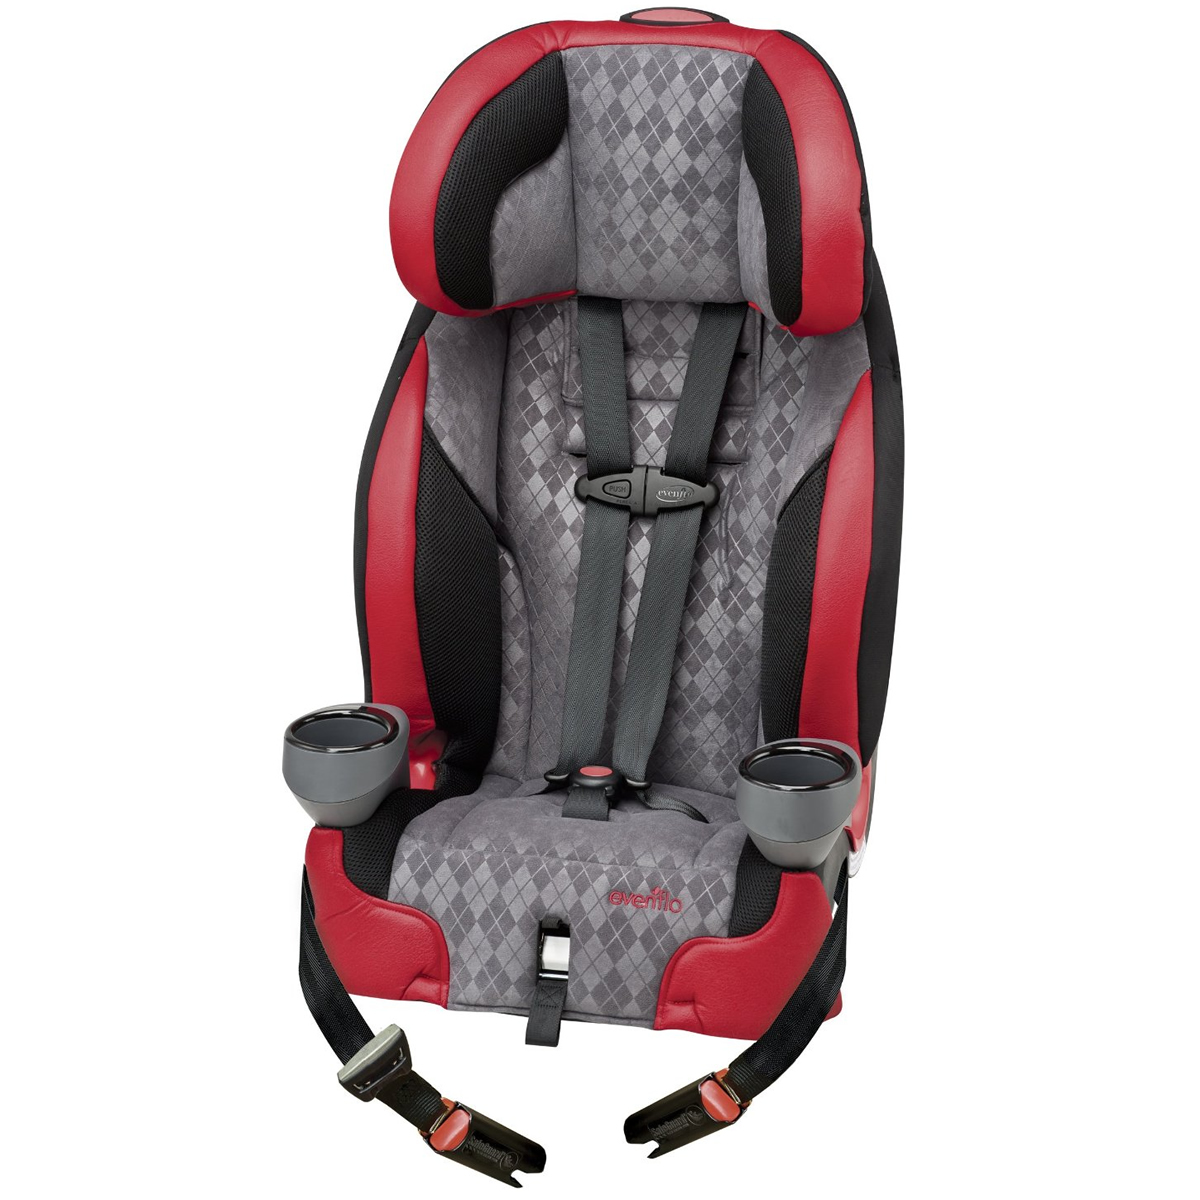 Evenflo Embrace 35 Infant Carseat Review Ding Ding We Have A Winner besides Sport as well travelingtoddler additionally 04079761510070 besides B000F0G0EKe6ef. on car seat stroller combination